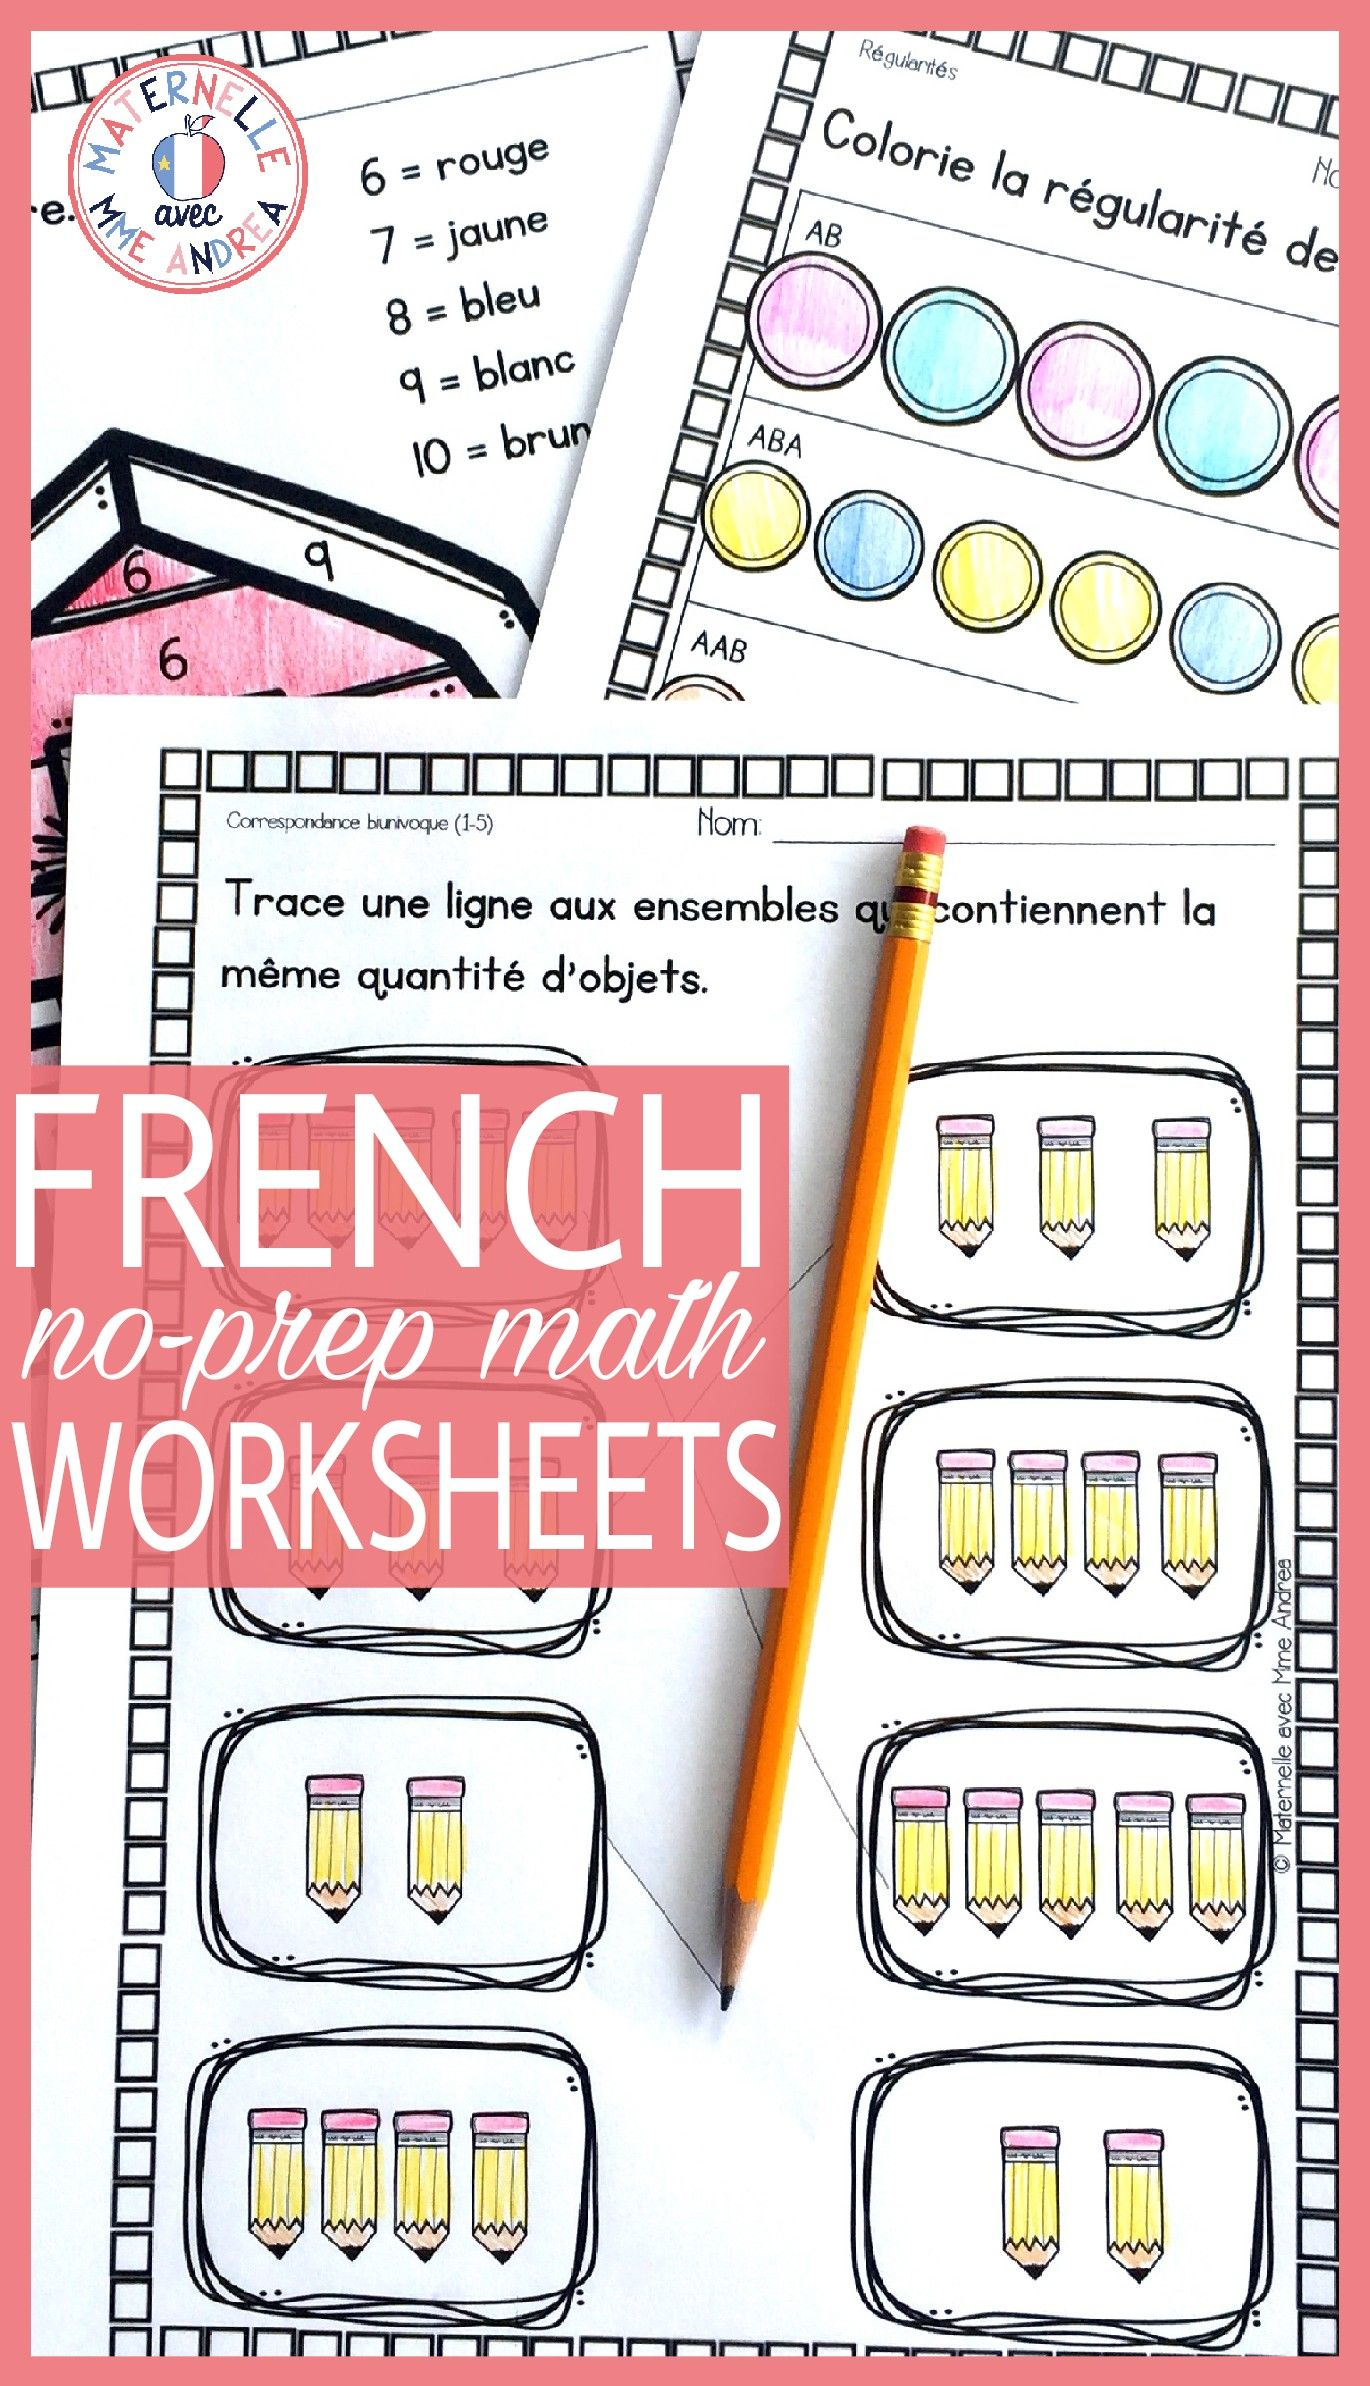 20 No Prep Math Worksheets In French Perfect For Kindergarten Or First Grade Counting Numb Kids Math Worksheets Math Worksheets Kindergarten Math Worksheets